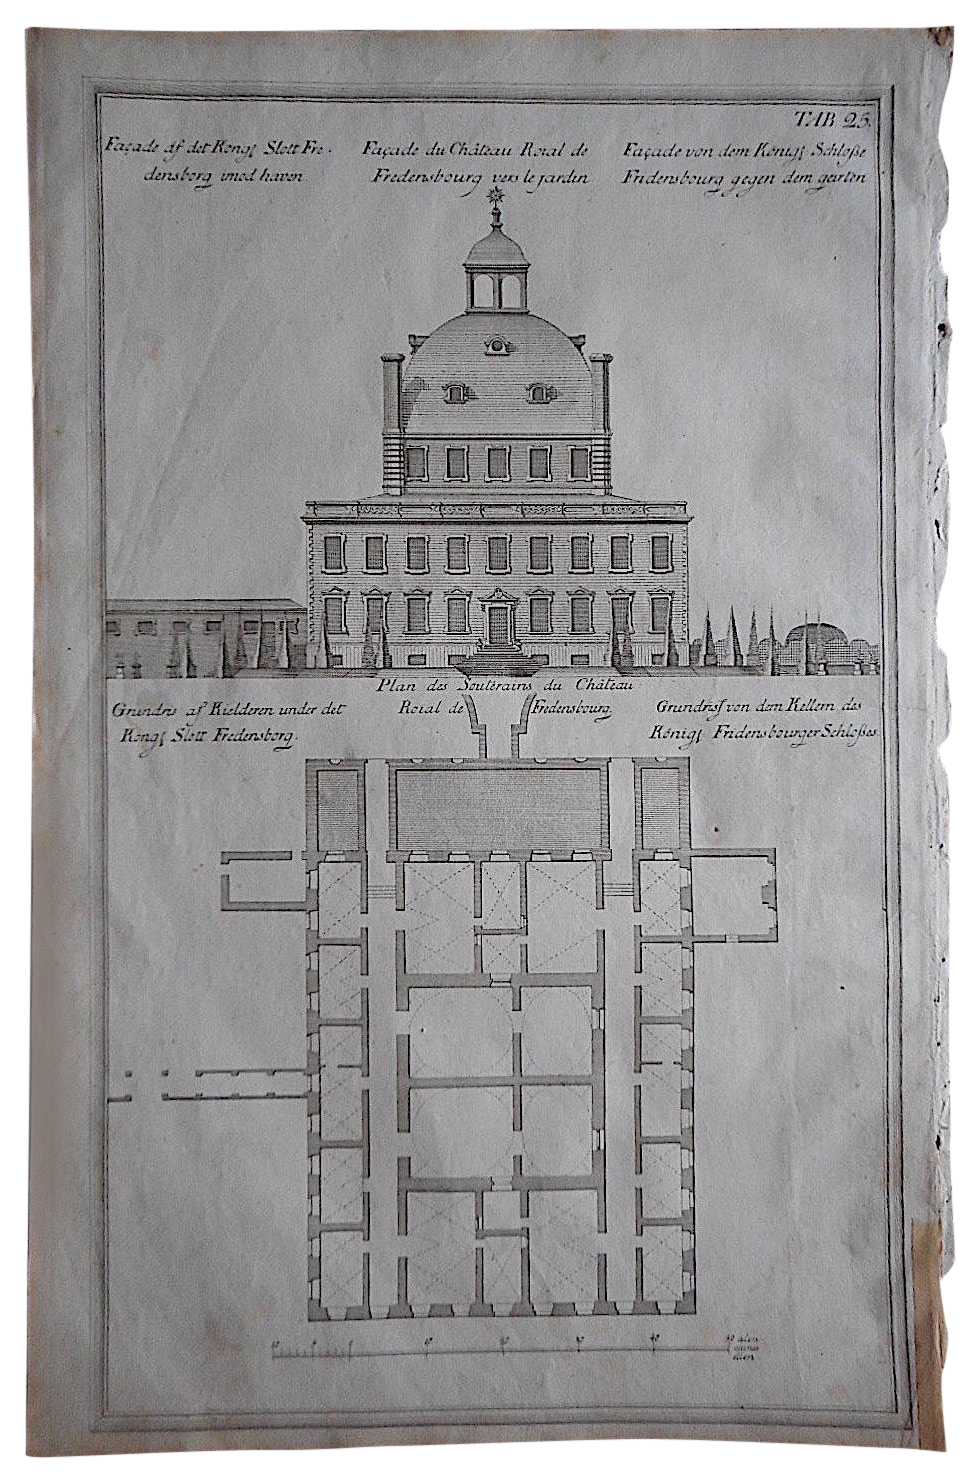 Architectual drawing monochromatic. Antique engraving facade floorplan